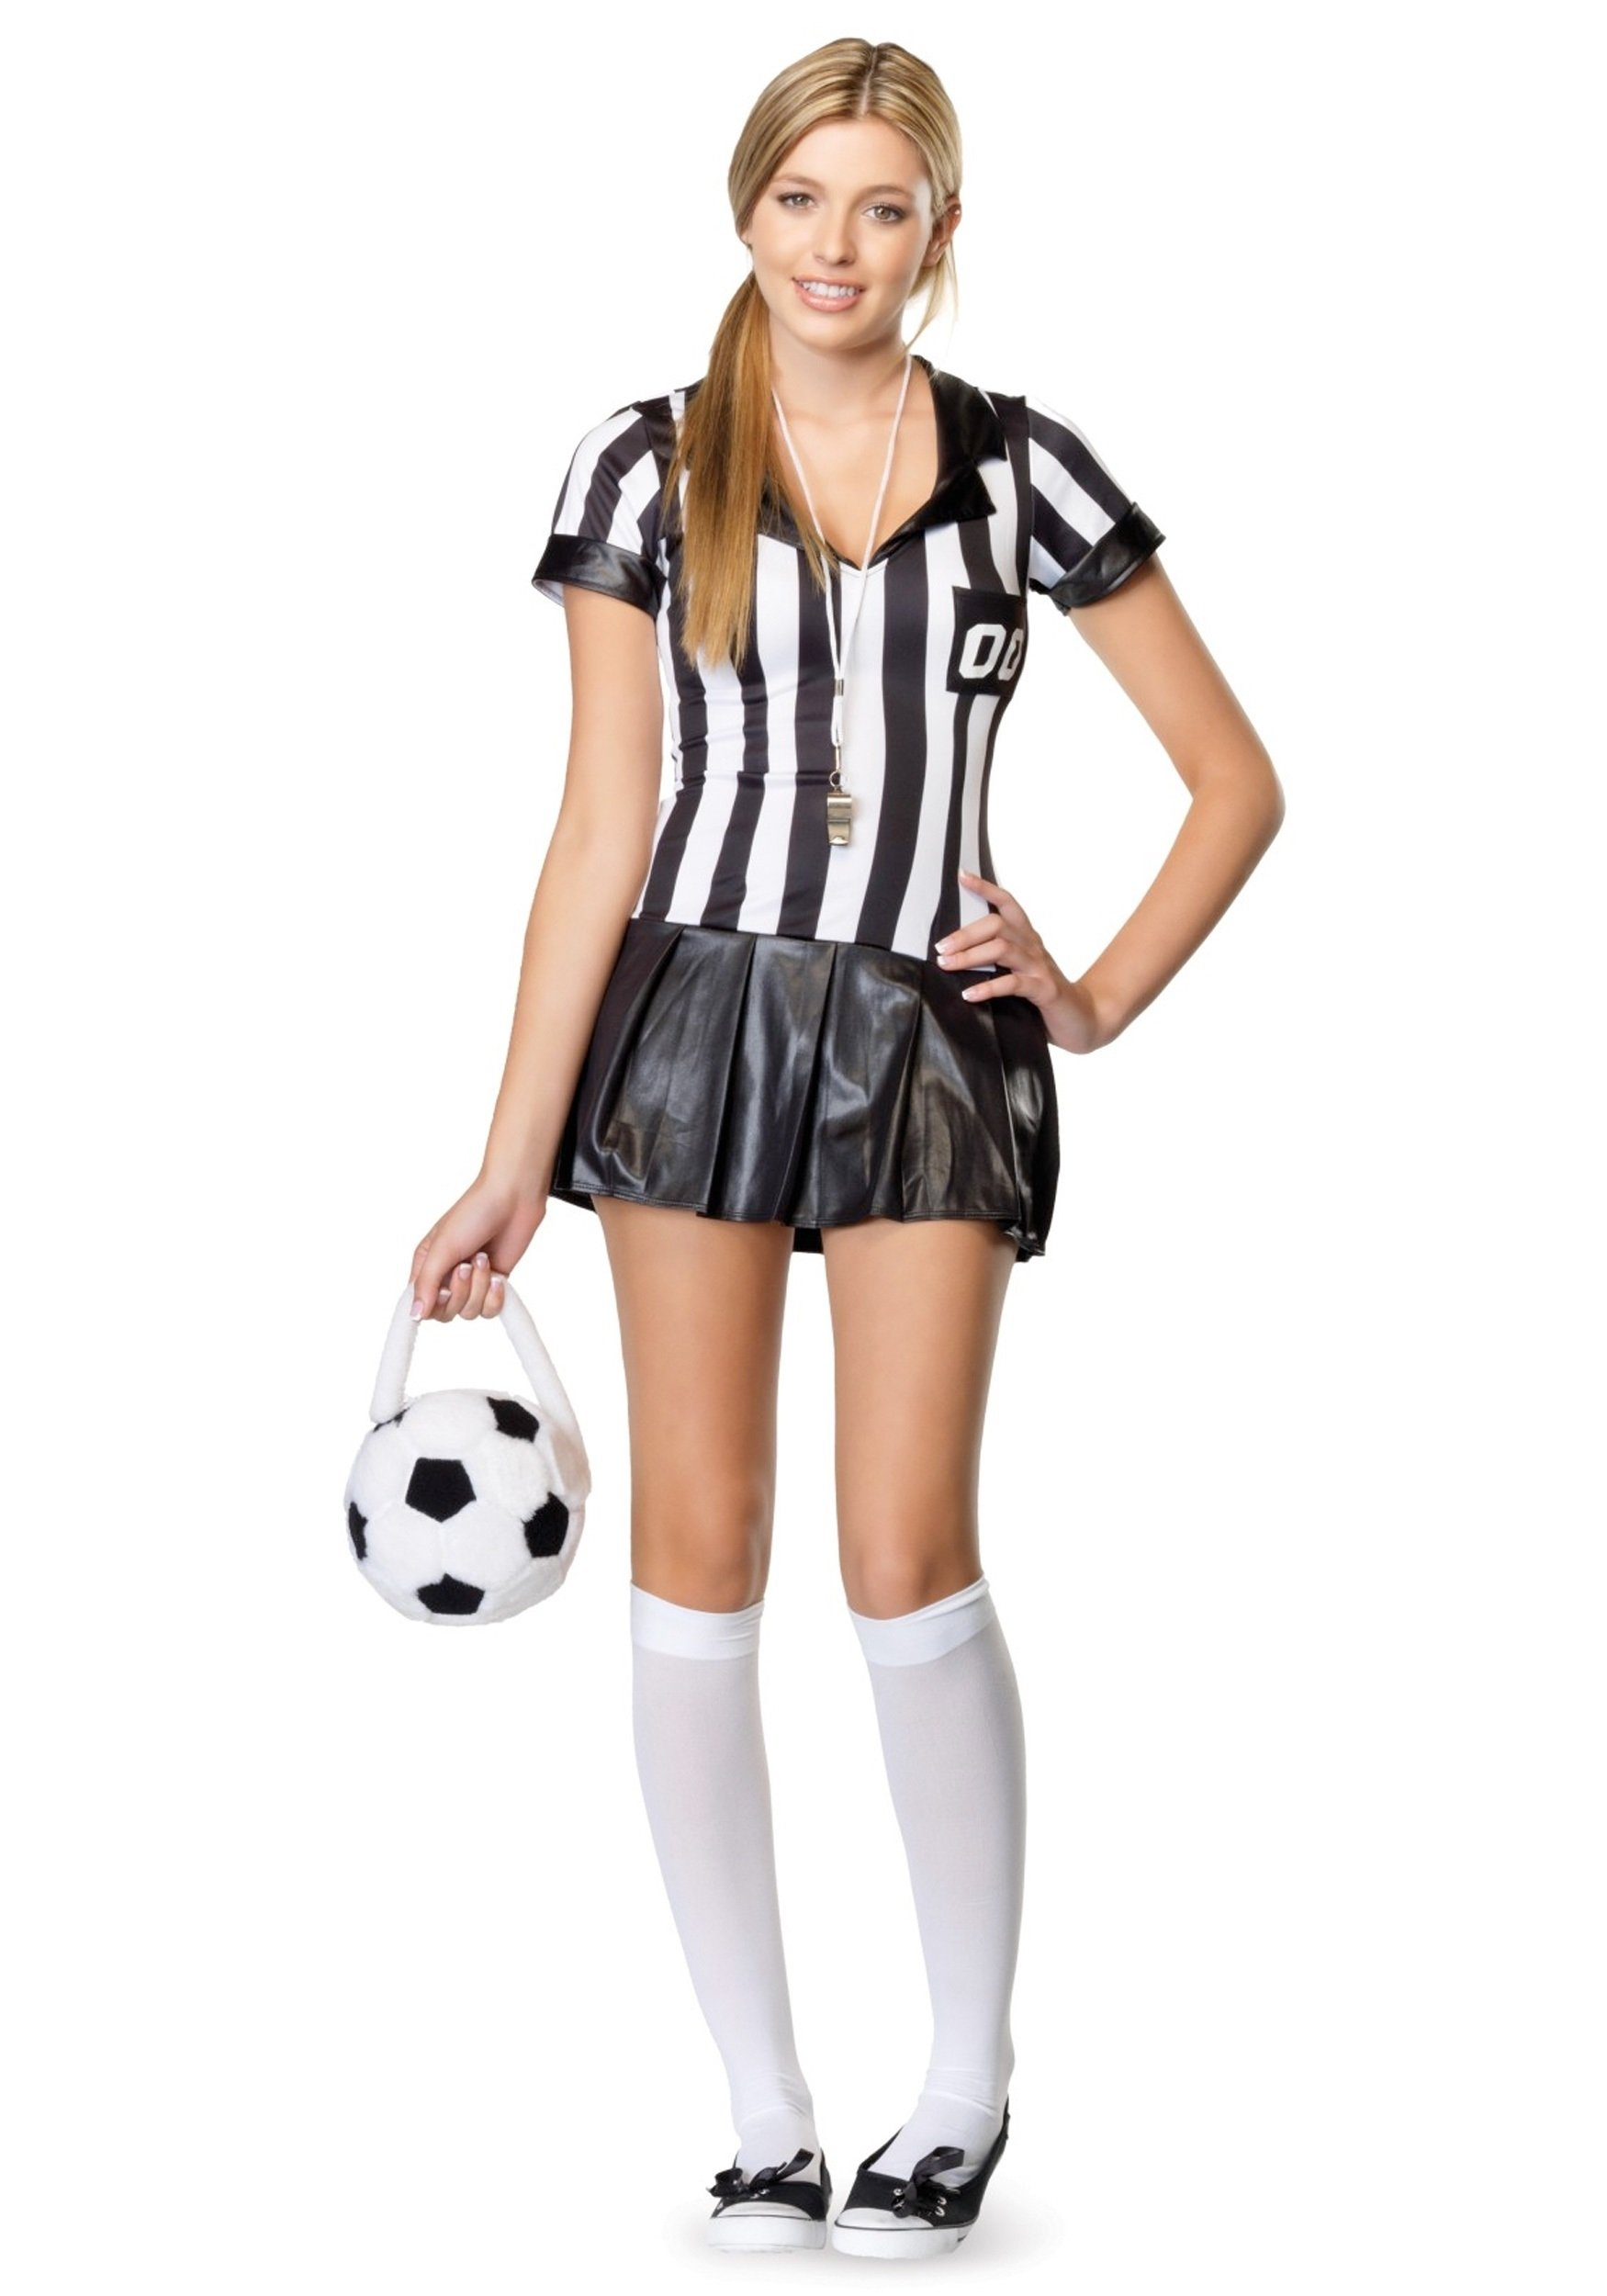 cute+teen+costumes | home costume ideas sports costumes referee